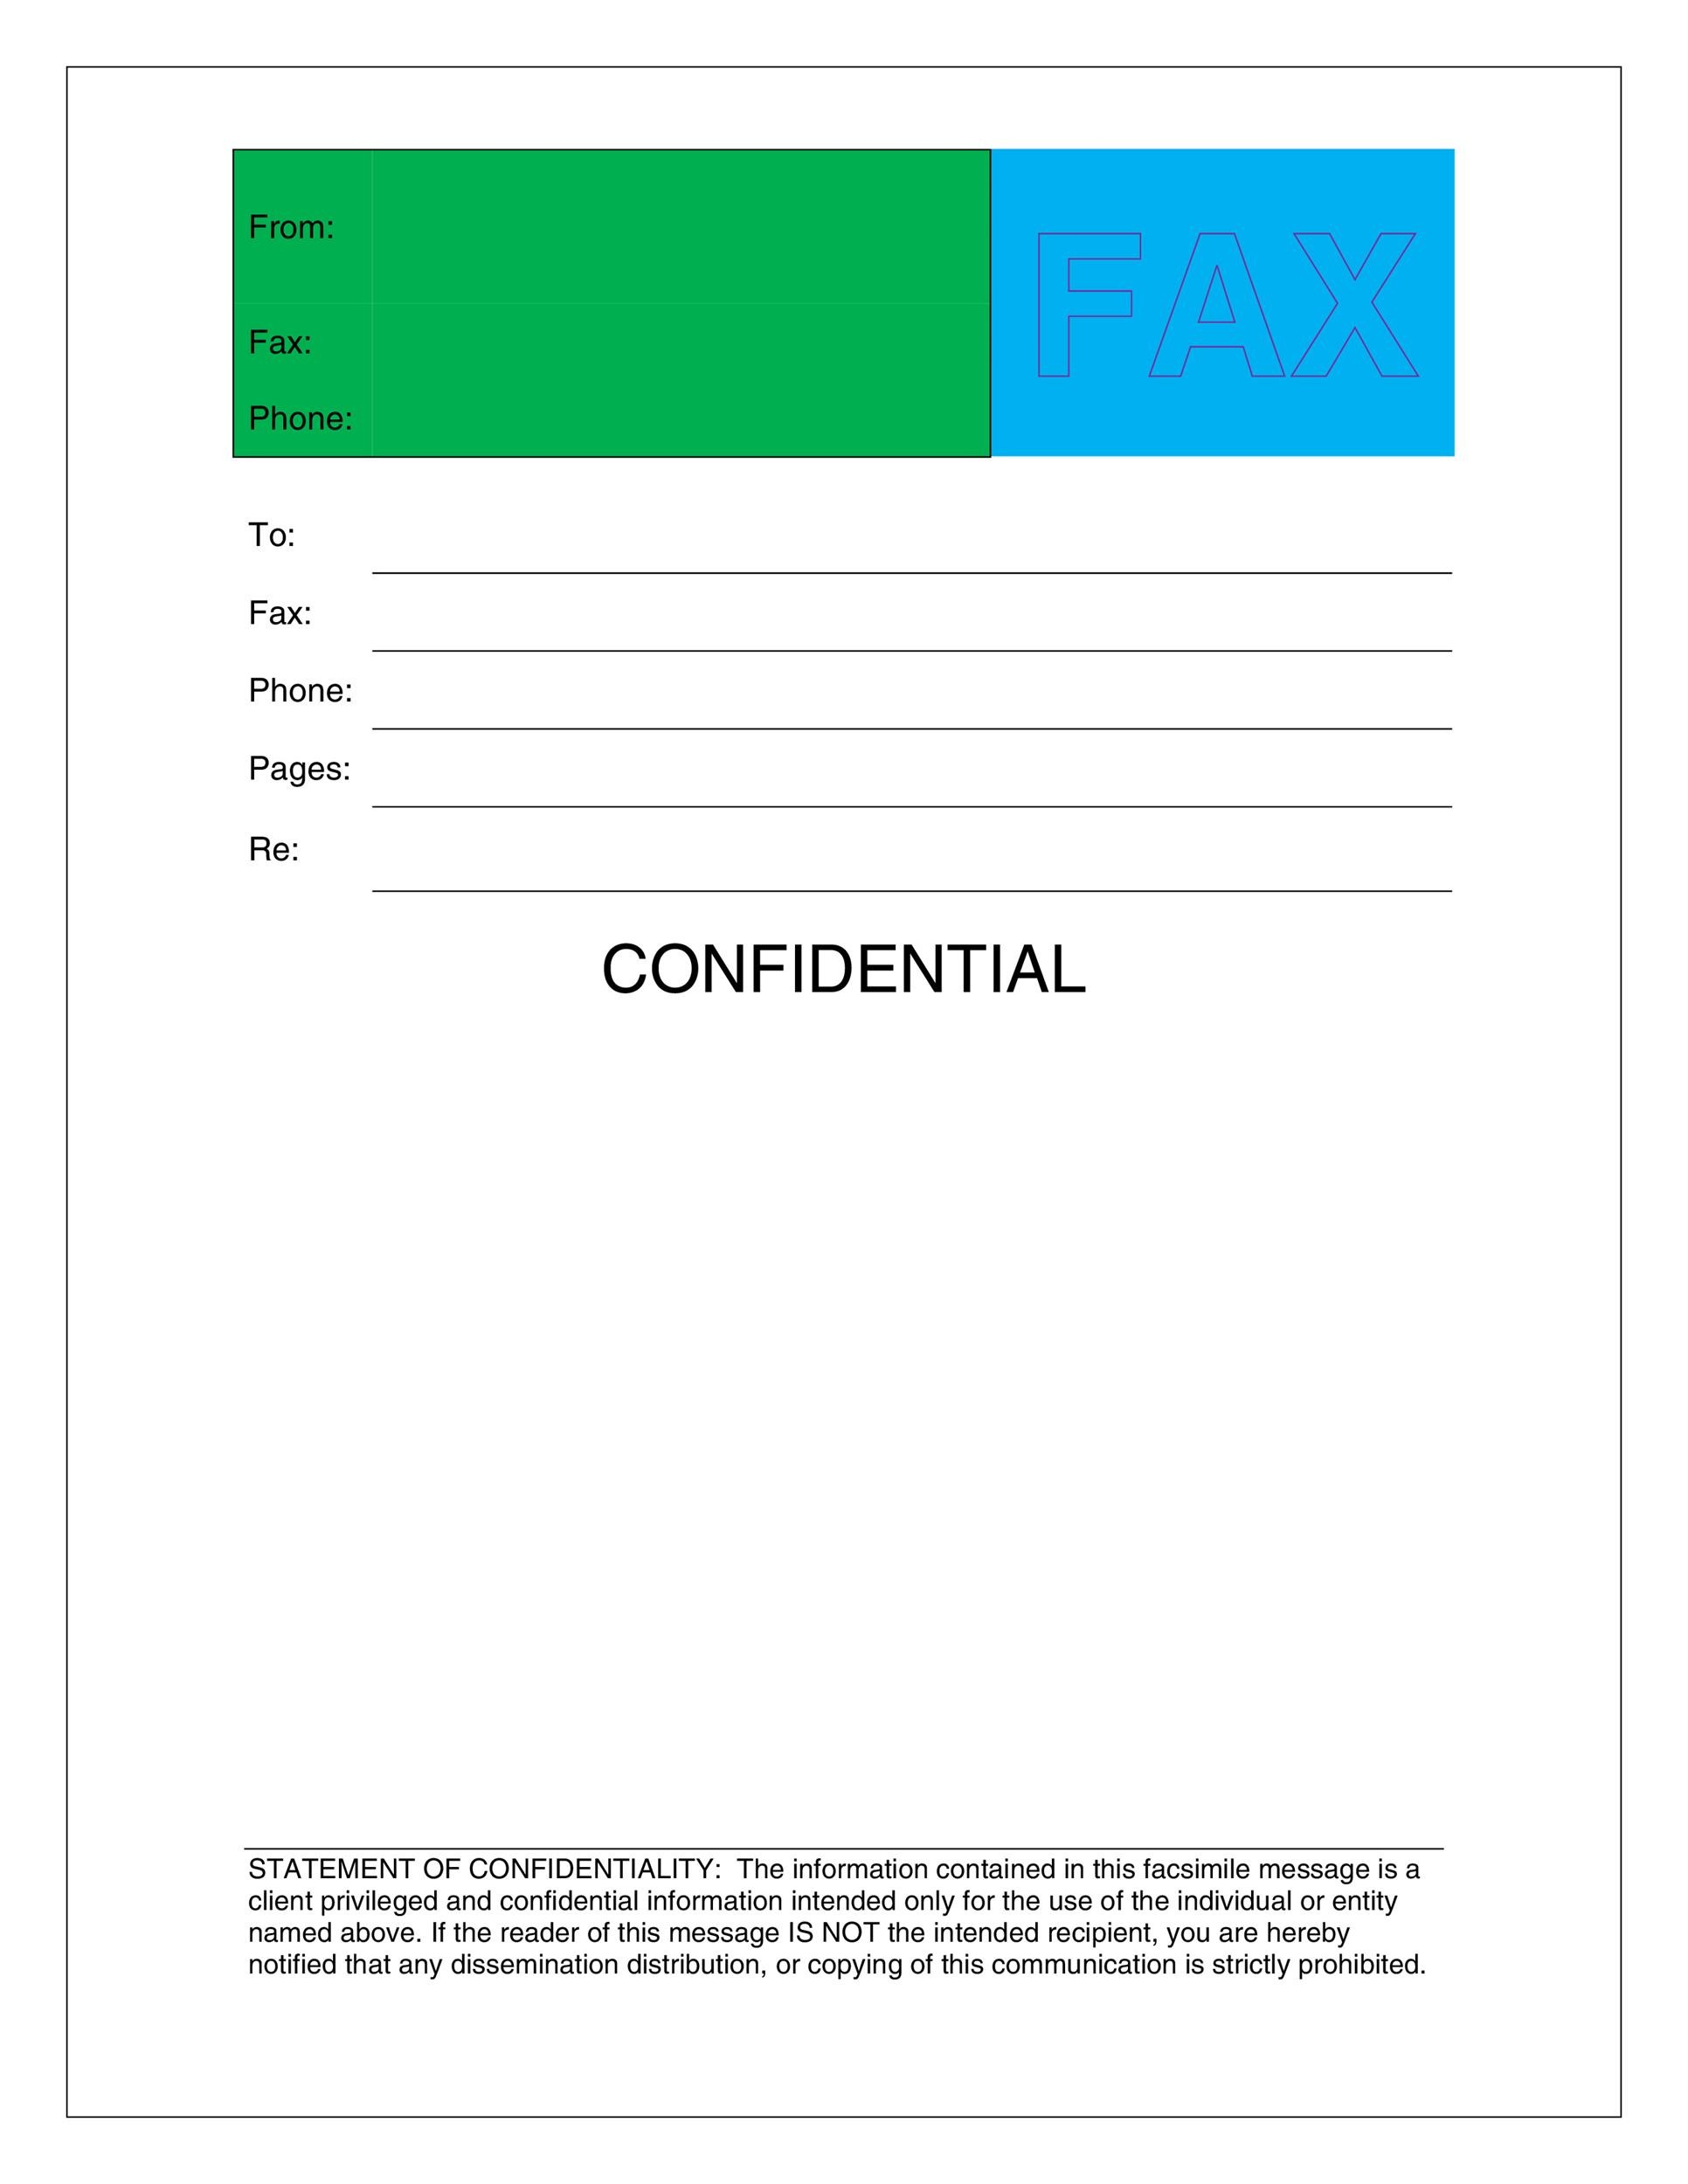 free fax cover sheet template 02 printable